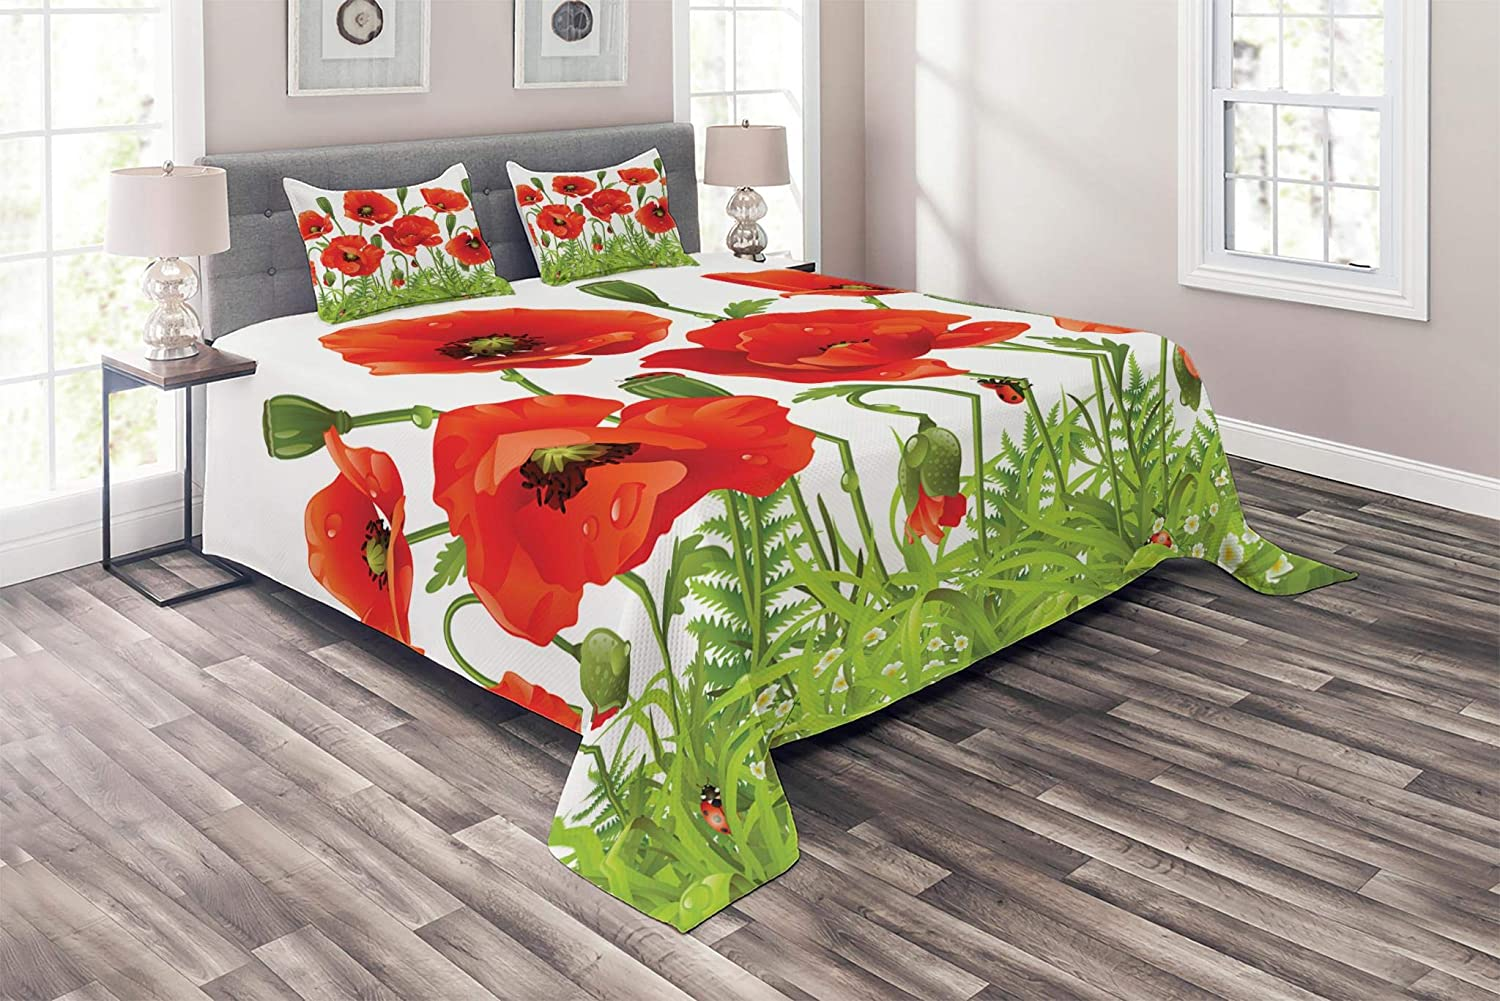 Lunarable Ladybugs Coverlet, Horizontal Border with Red Poppy Flower Bud Poppies Chamomile Wildflowers Lawn, 3 Piece Decorative Quilted Bedspread Set with 2 Pillow Shams, King Size, Green Red